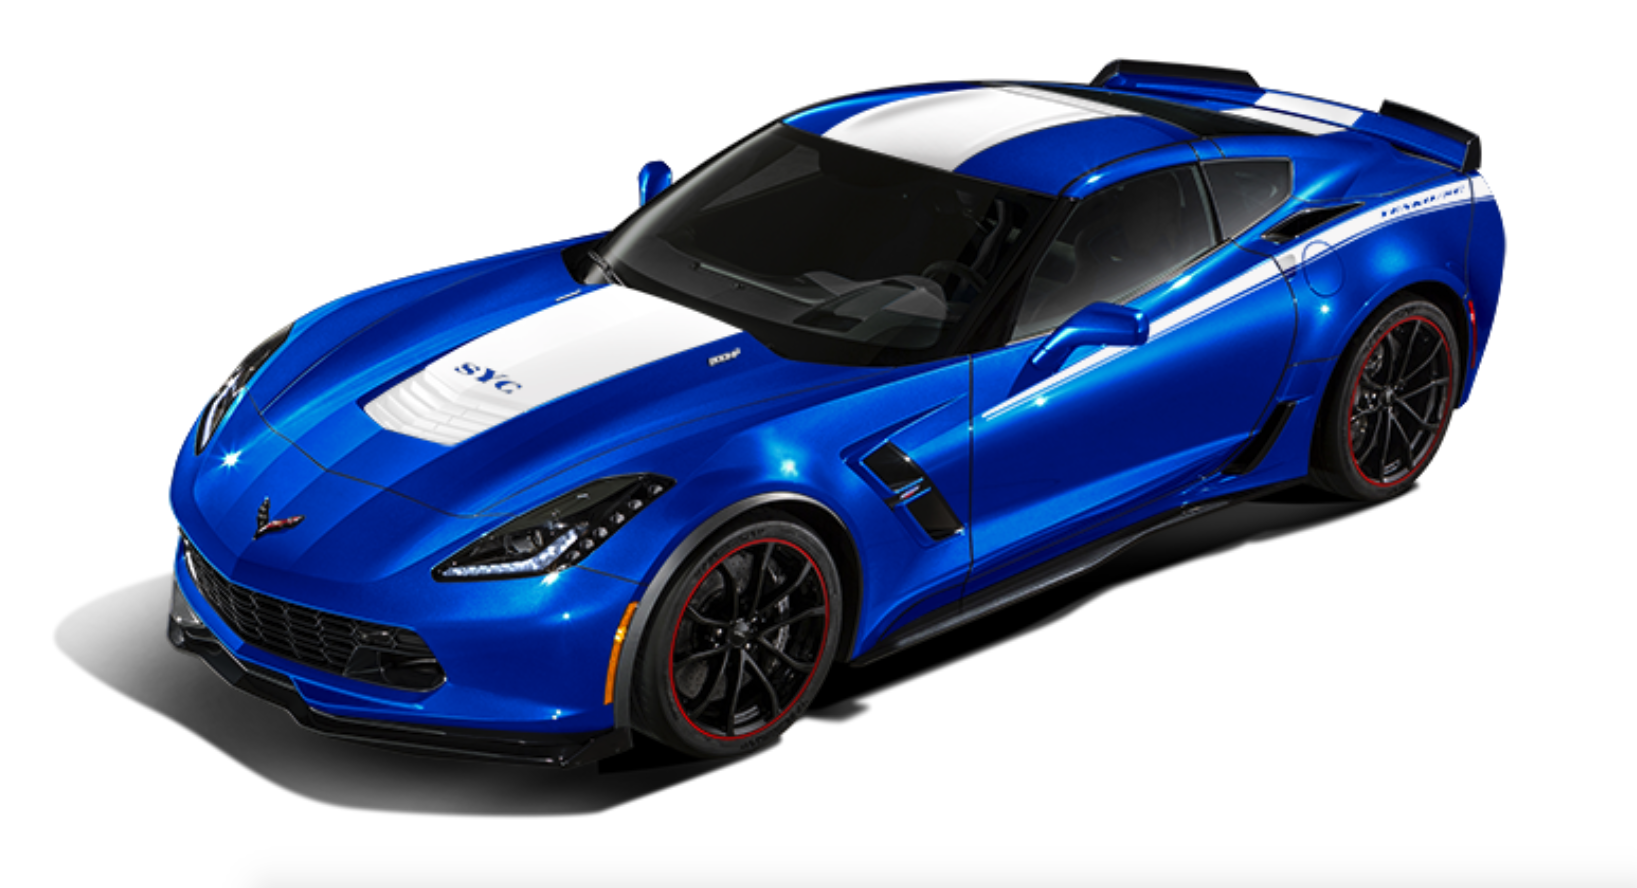 1,000 HP Yenko Corvette Coming to a Chevy Dealer Near You